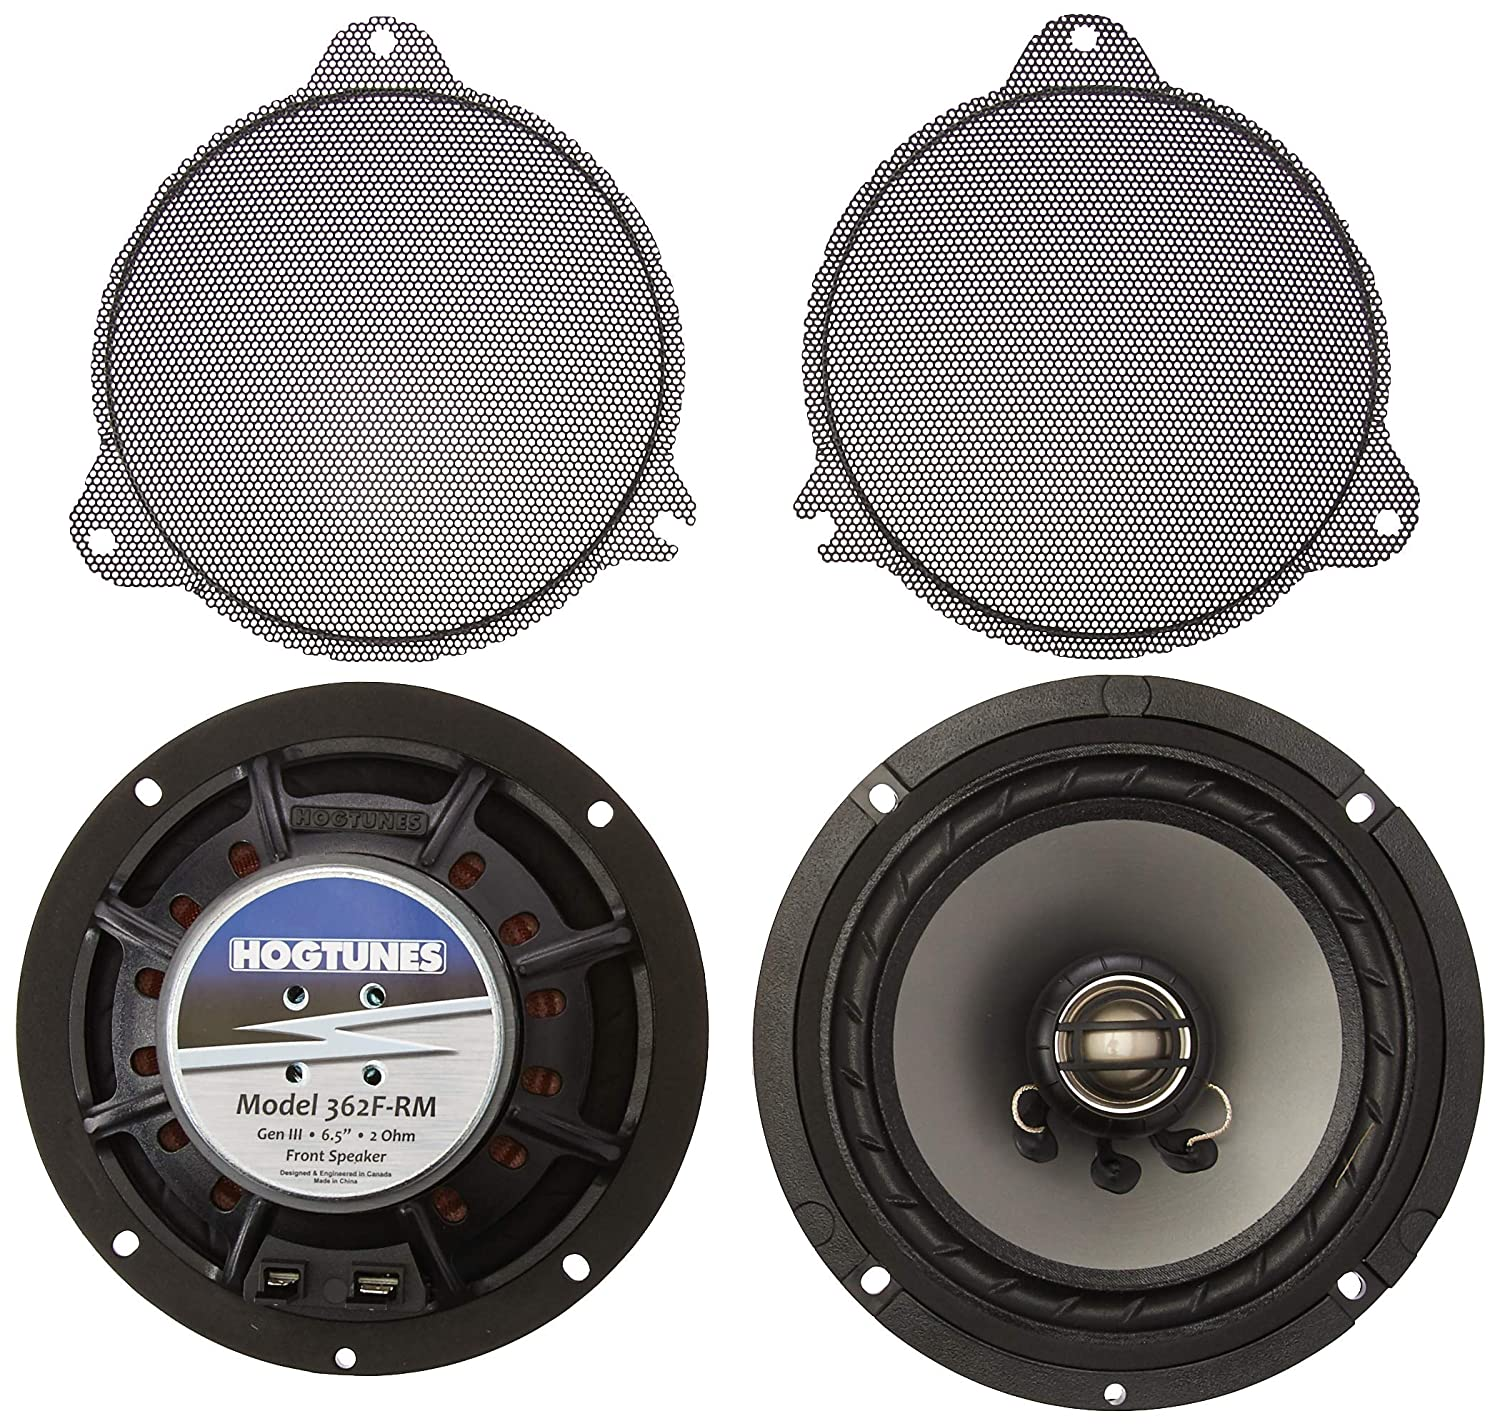 Replacement Gen 3 6.5 for 2014-2016 Harley-Davidson Touring Models Hogtunes 362F-RM Front Speaker